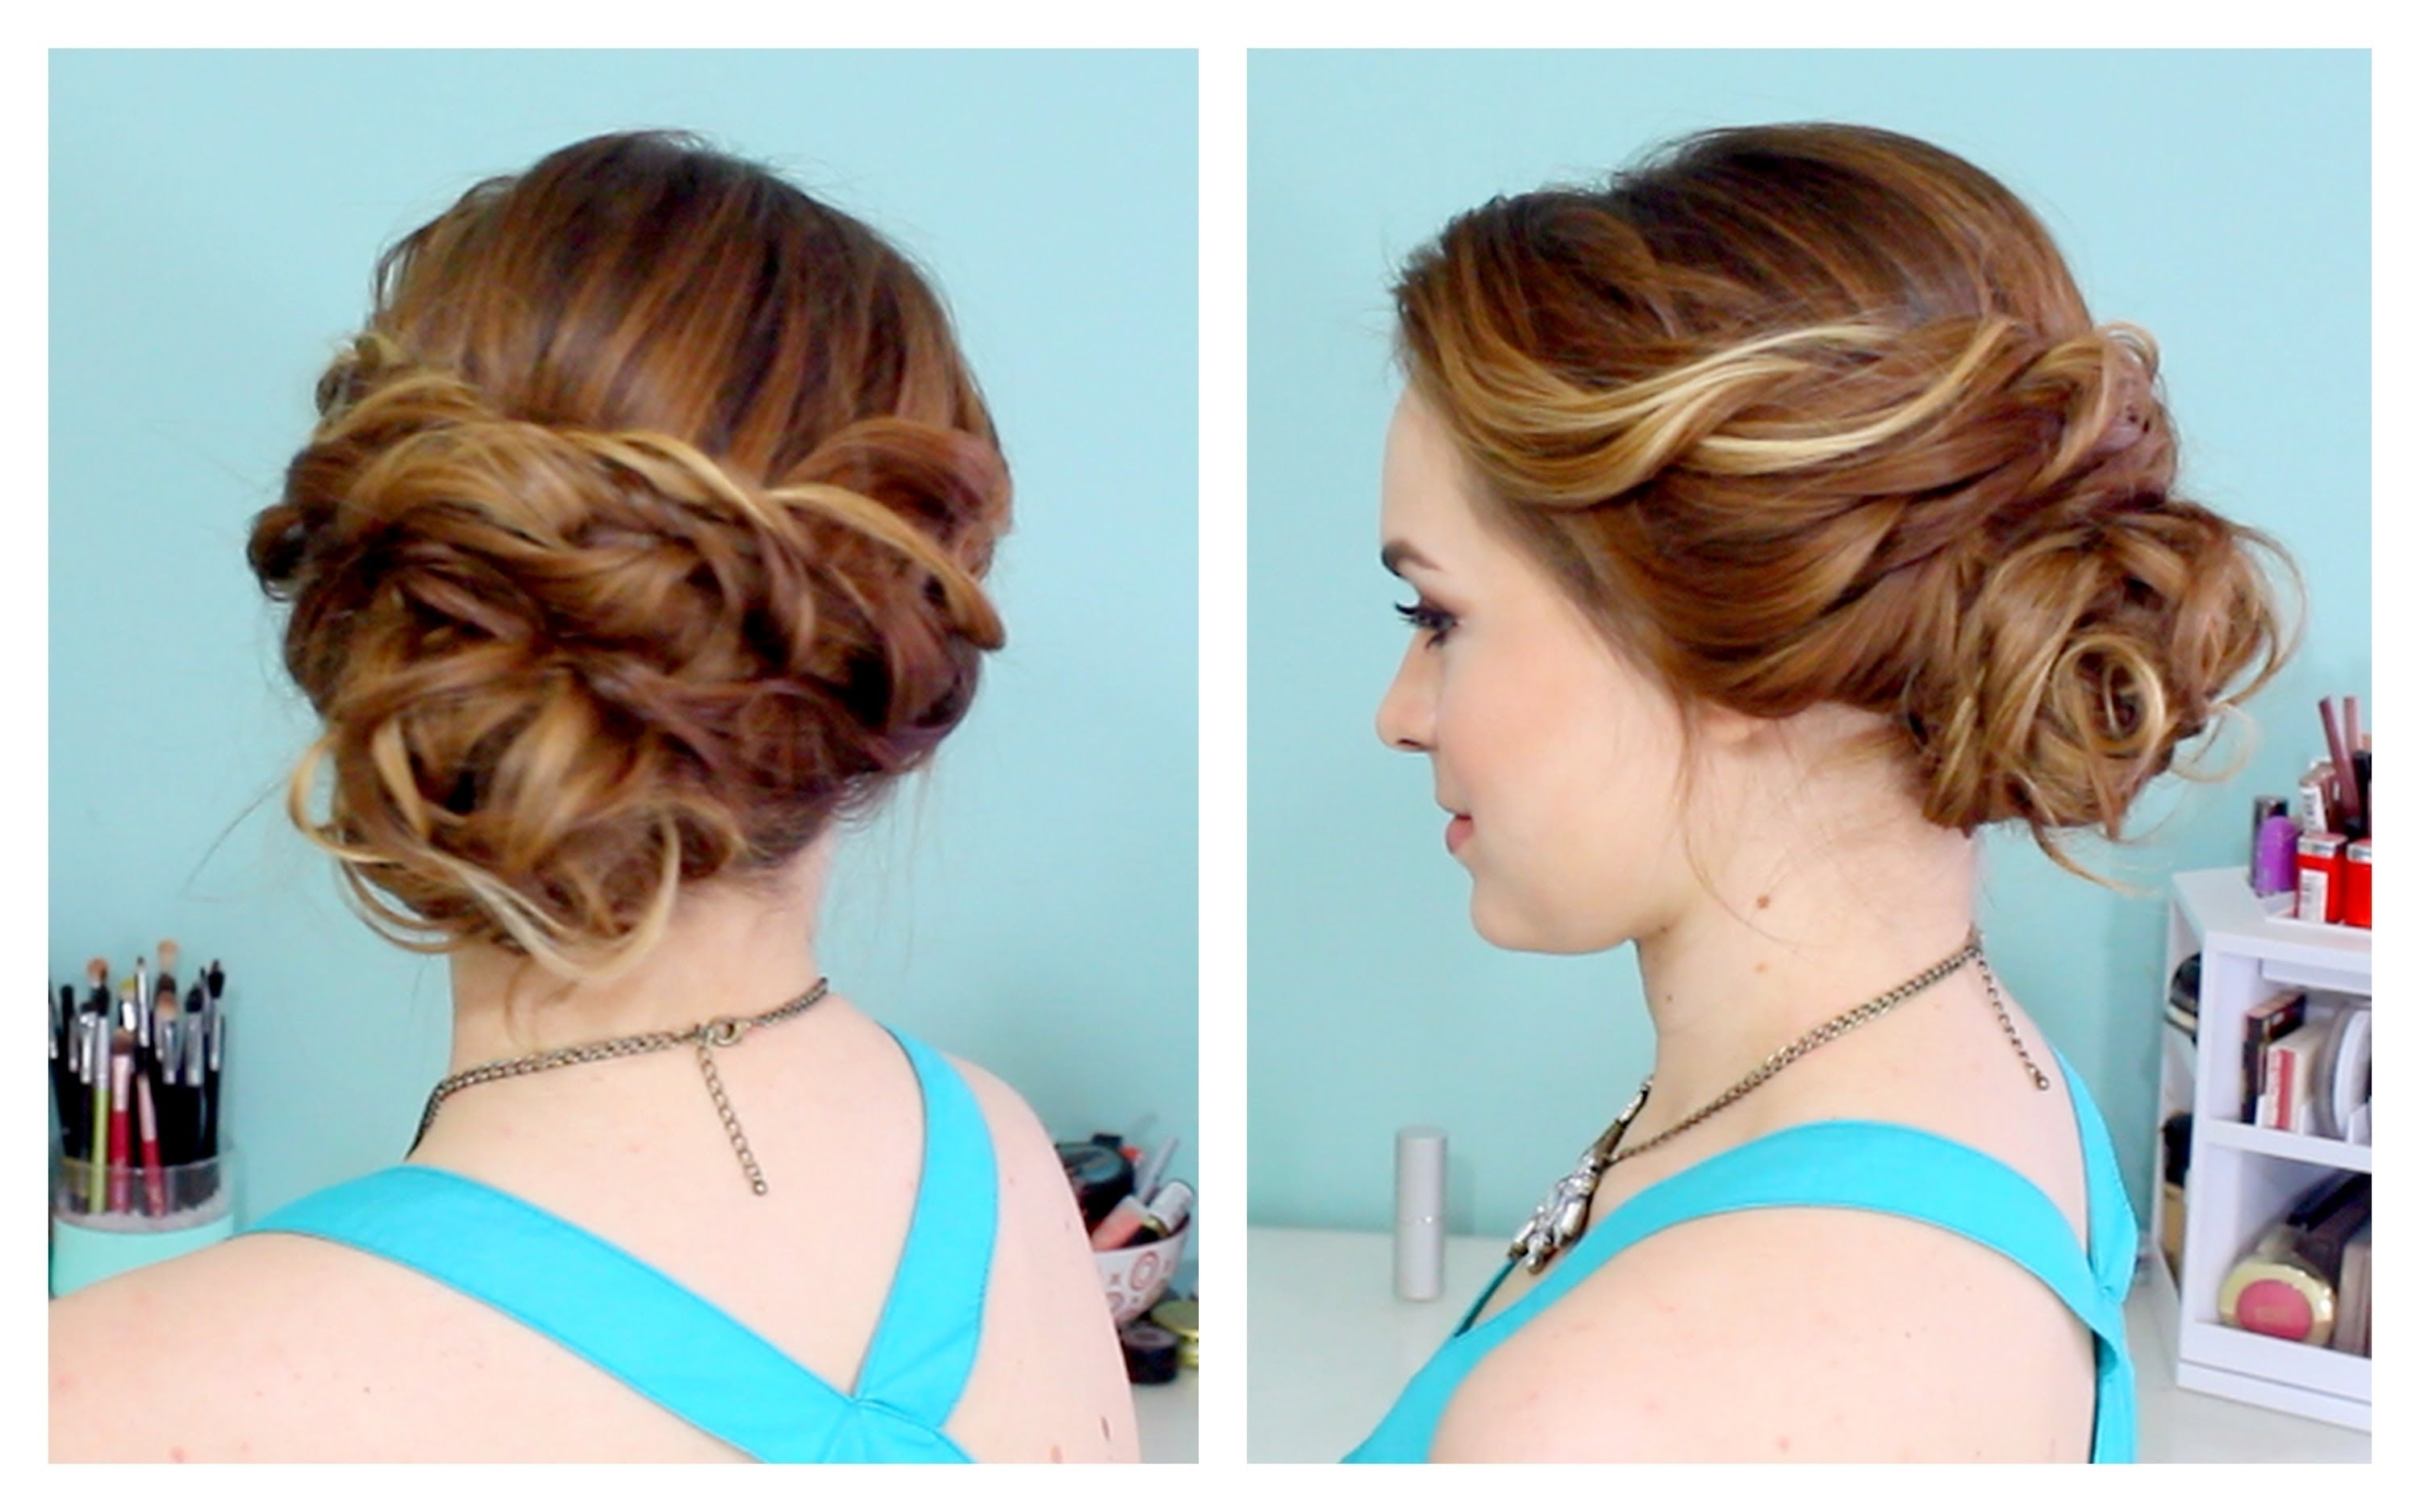 Casual Updo Hairstyles For Medium Length Hair Casual Updo Hairstyles Within Casual Updos For Medium Length Hair (View 12 of 15)